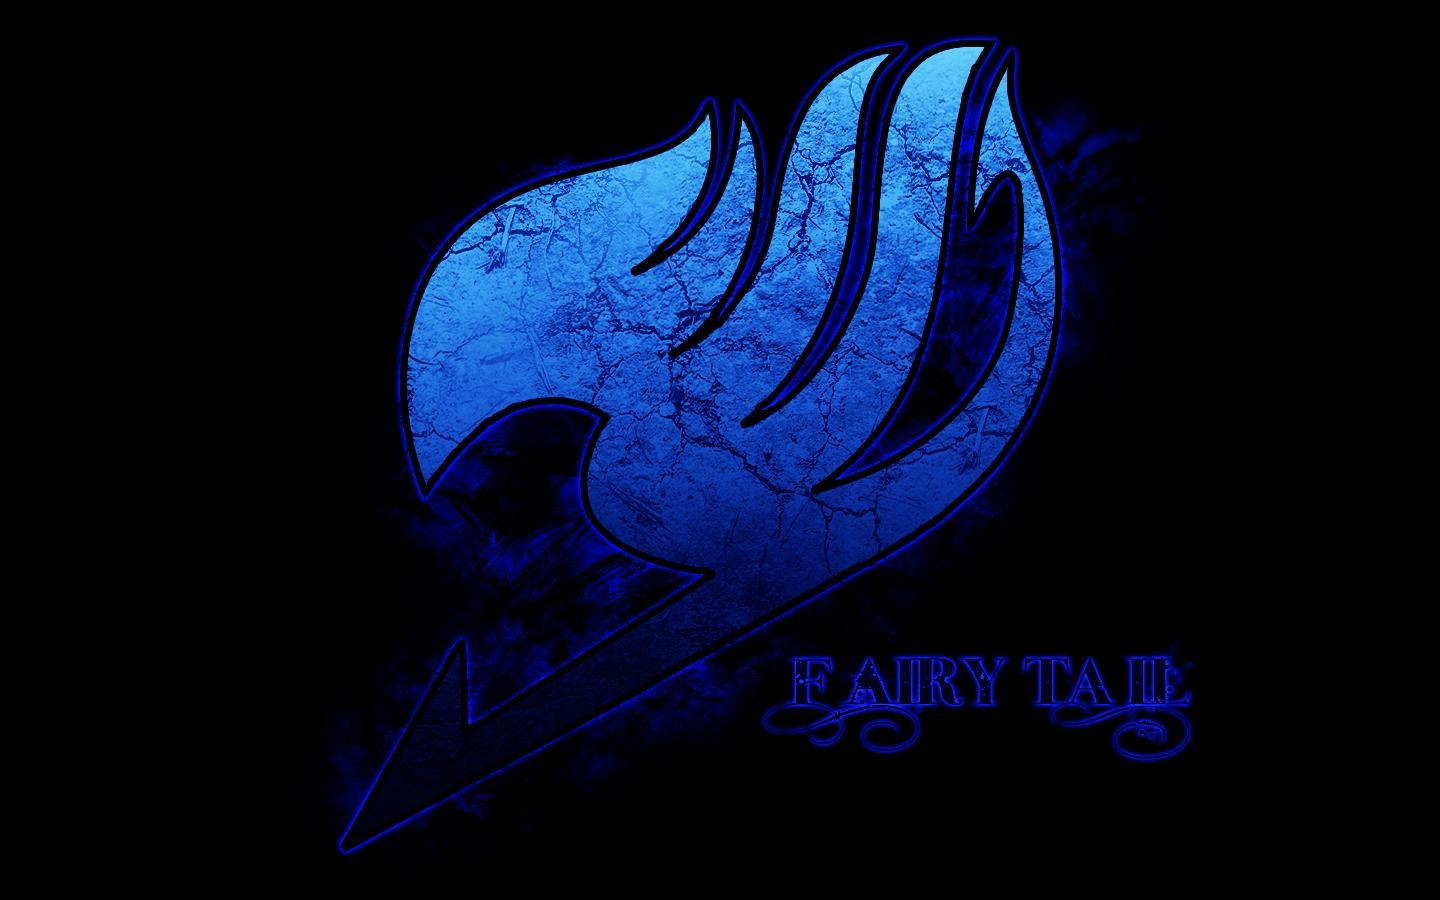 "First question, in the anime ""Fairy Tail"", what is the full name of the main character?"